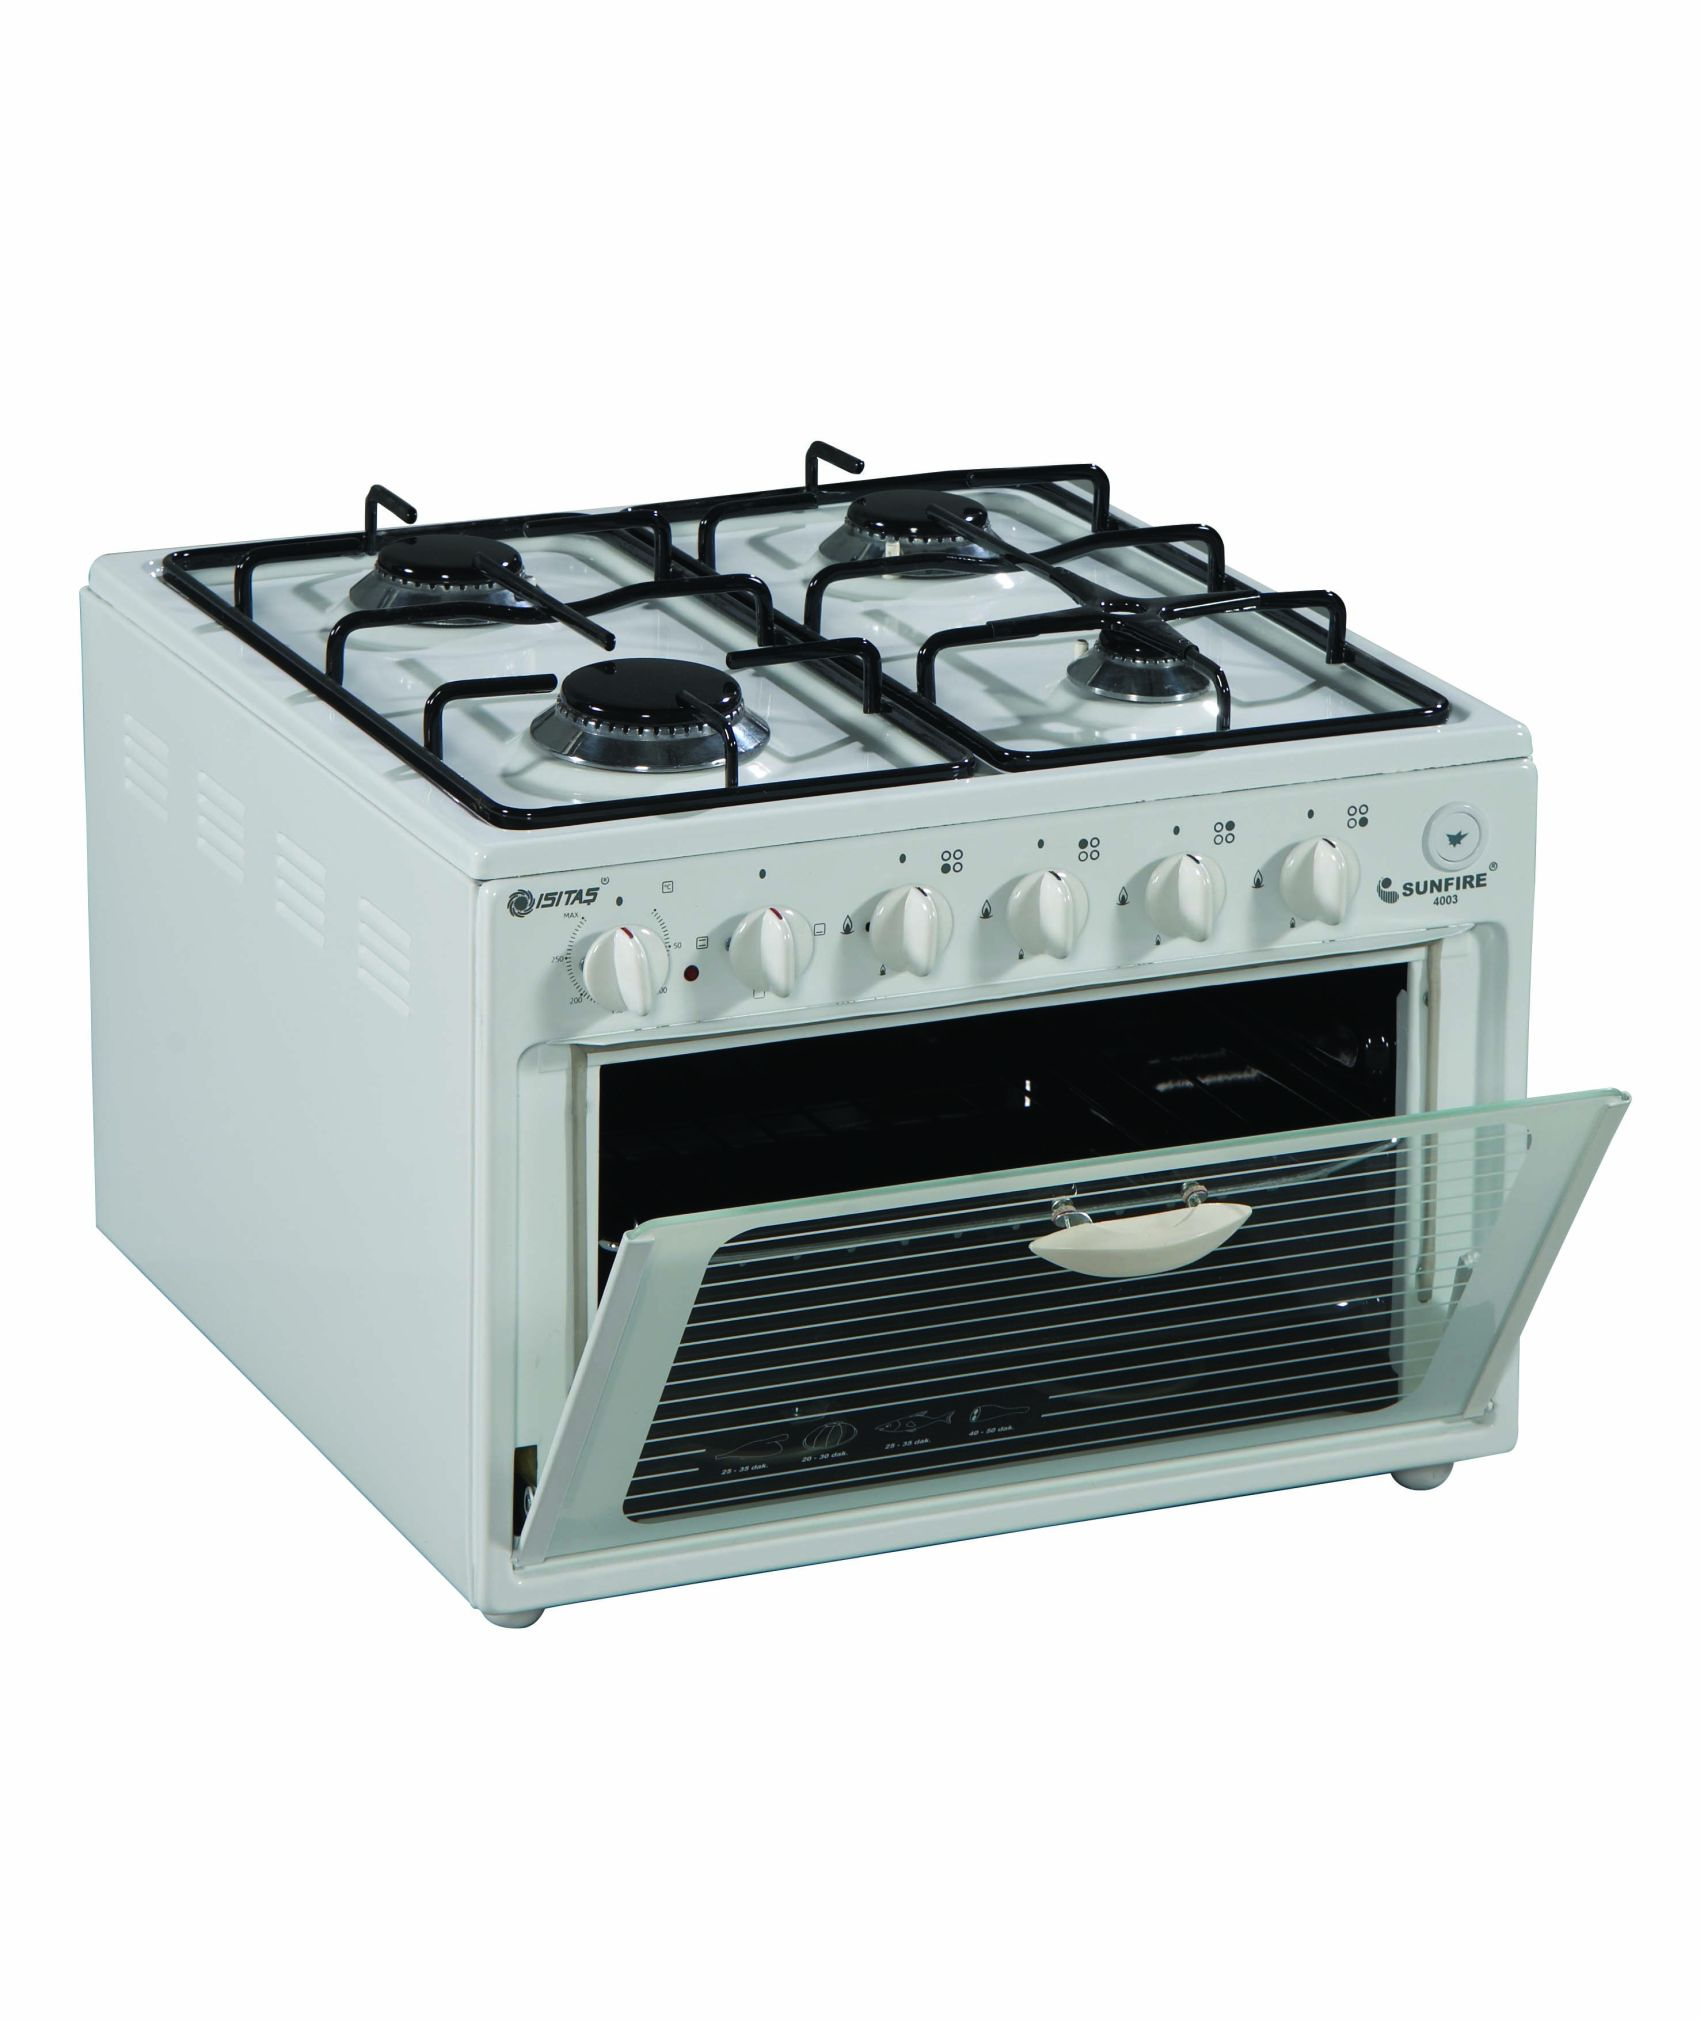 Table Top Gas Oven Buy Table Top Gas Oven Product On